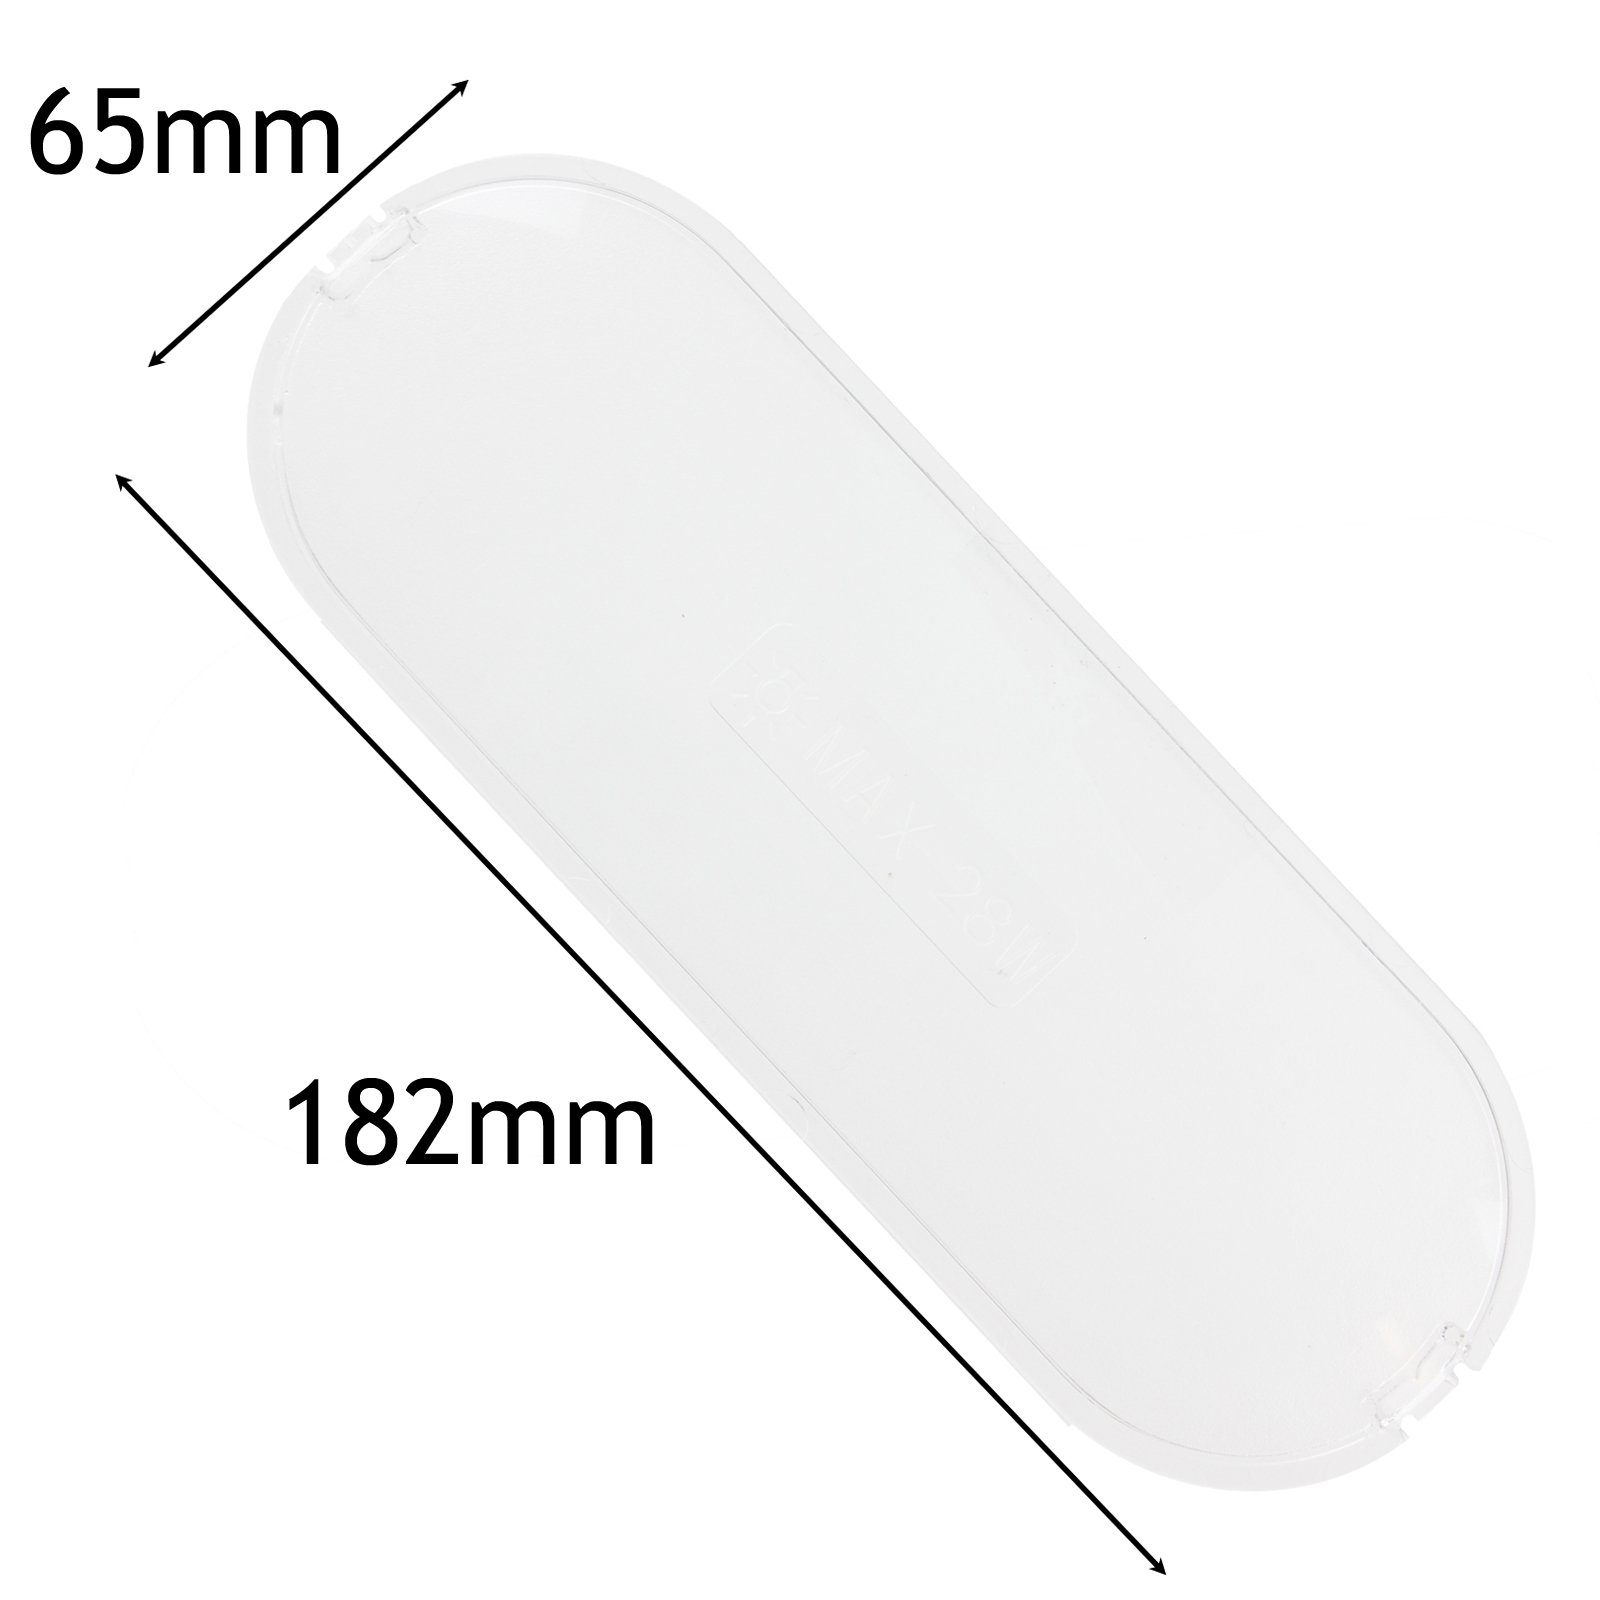 Spares2go Cooker Hood Light Diffuser / Lens Cover Plate (182Mm X 65Mm)